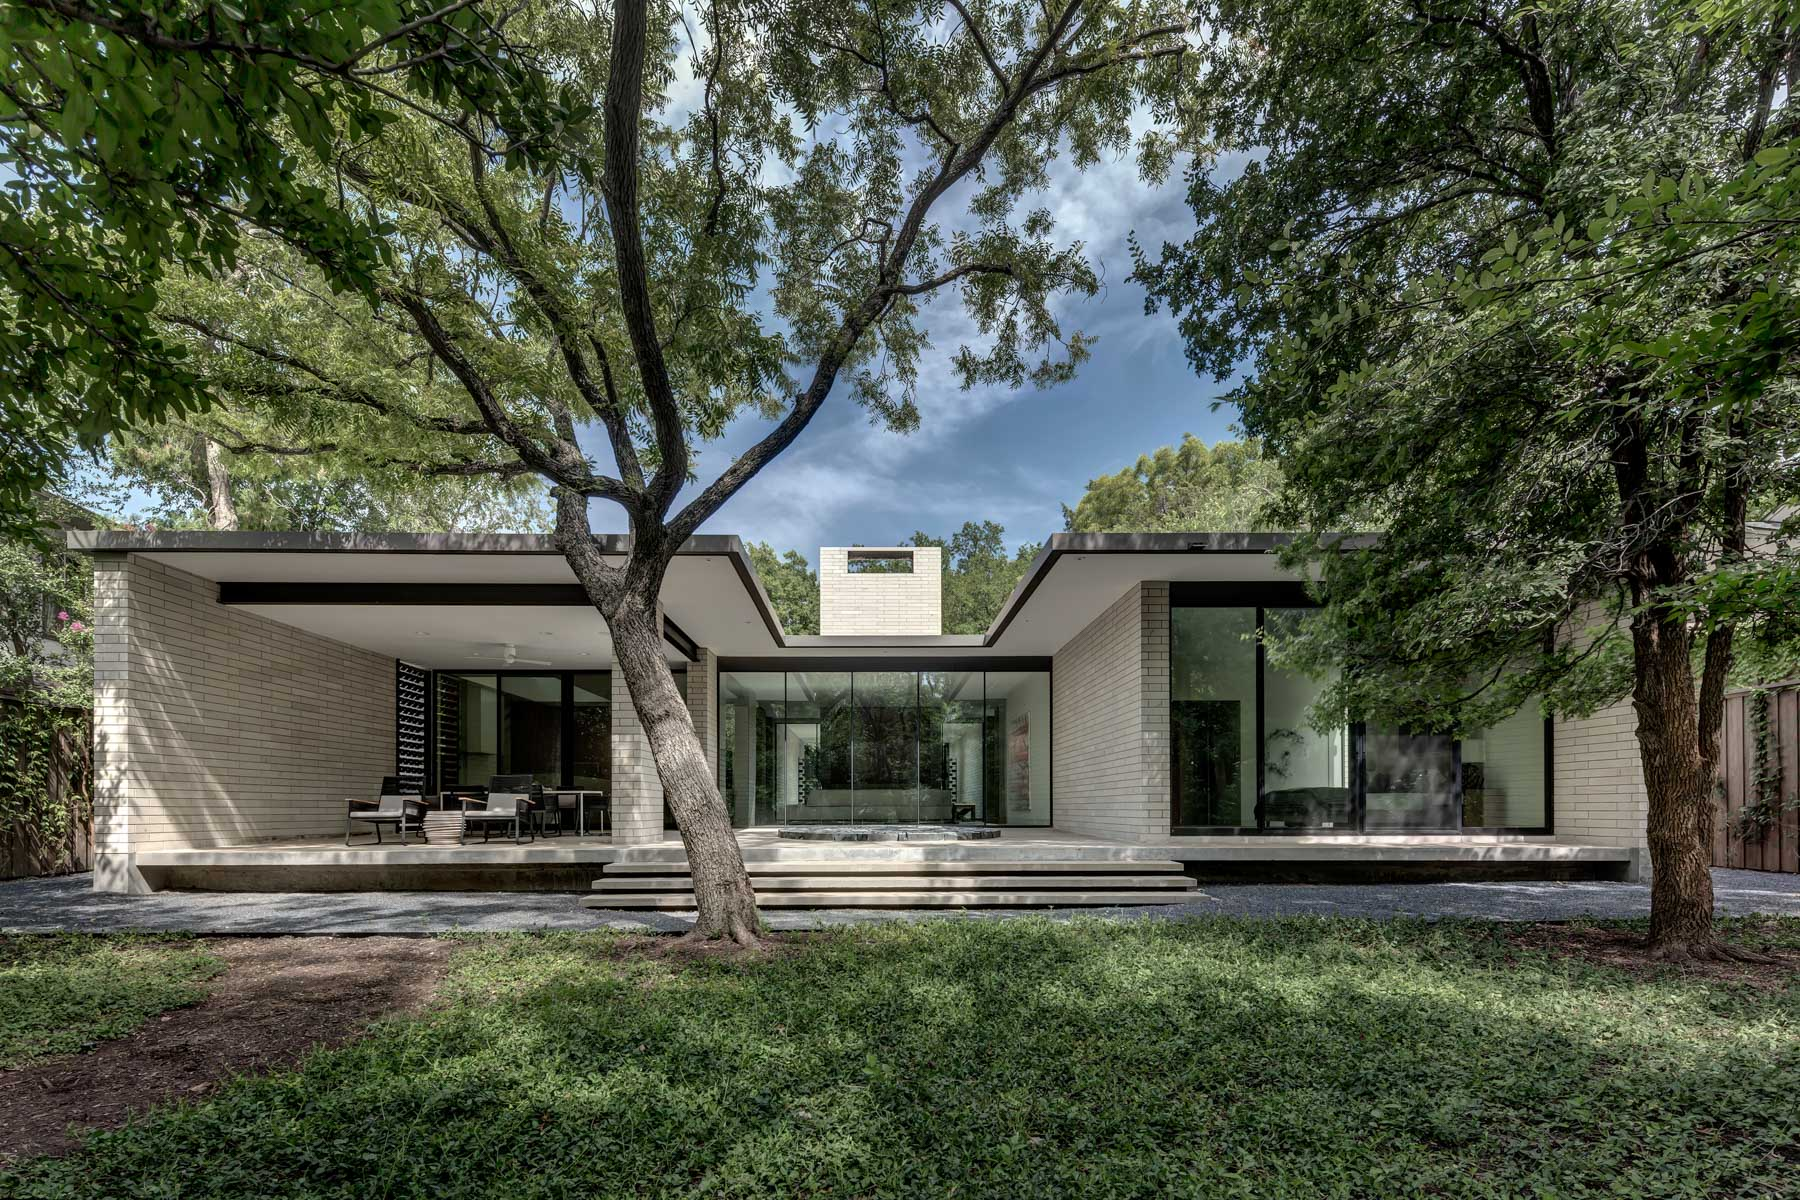 Single Family Home for Sale at Architect-Designed Bluffview Home 4603 Bluffview Blvd. Dallas, Texas, 75209 United States